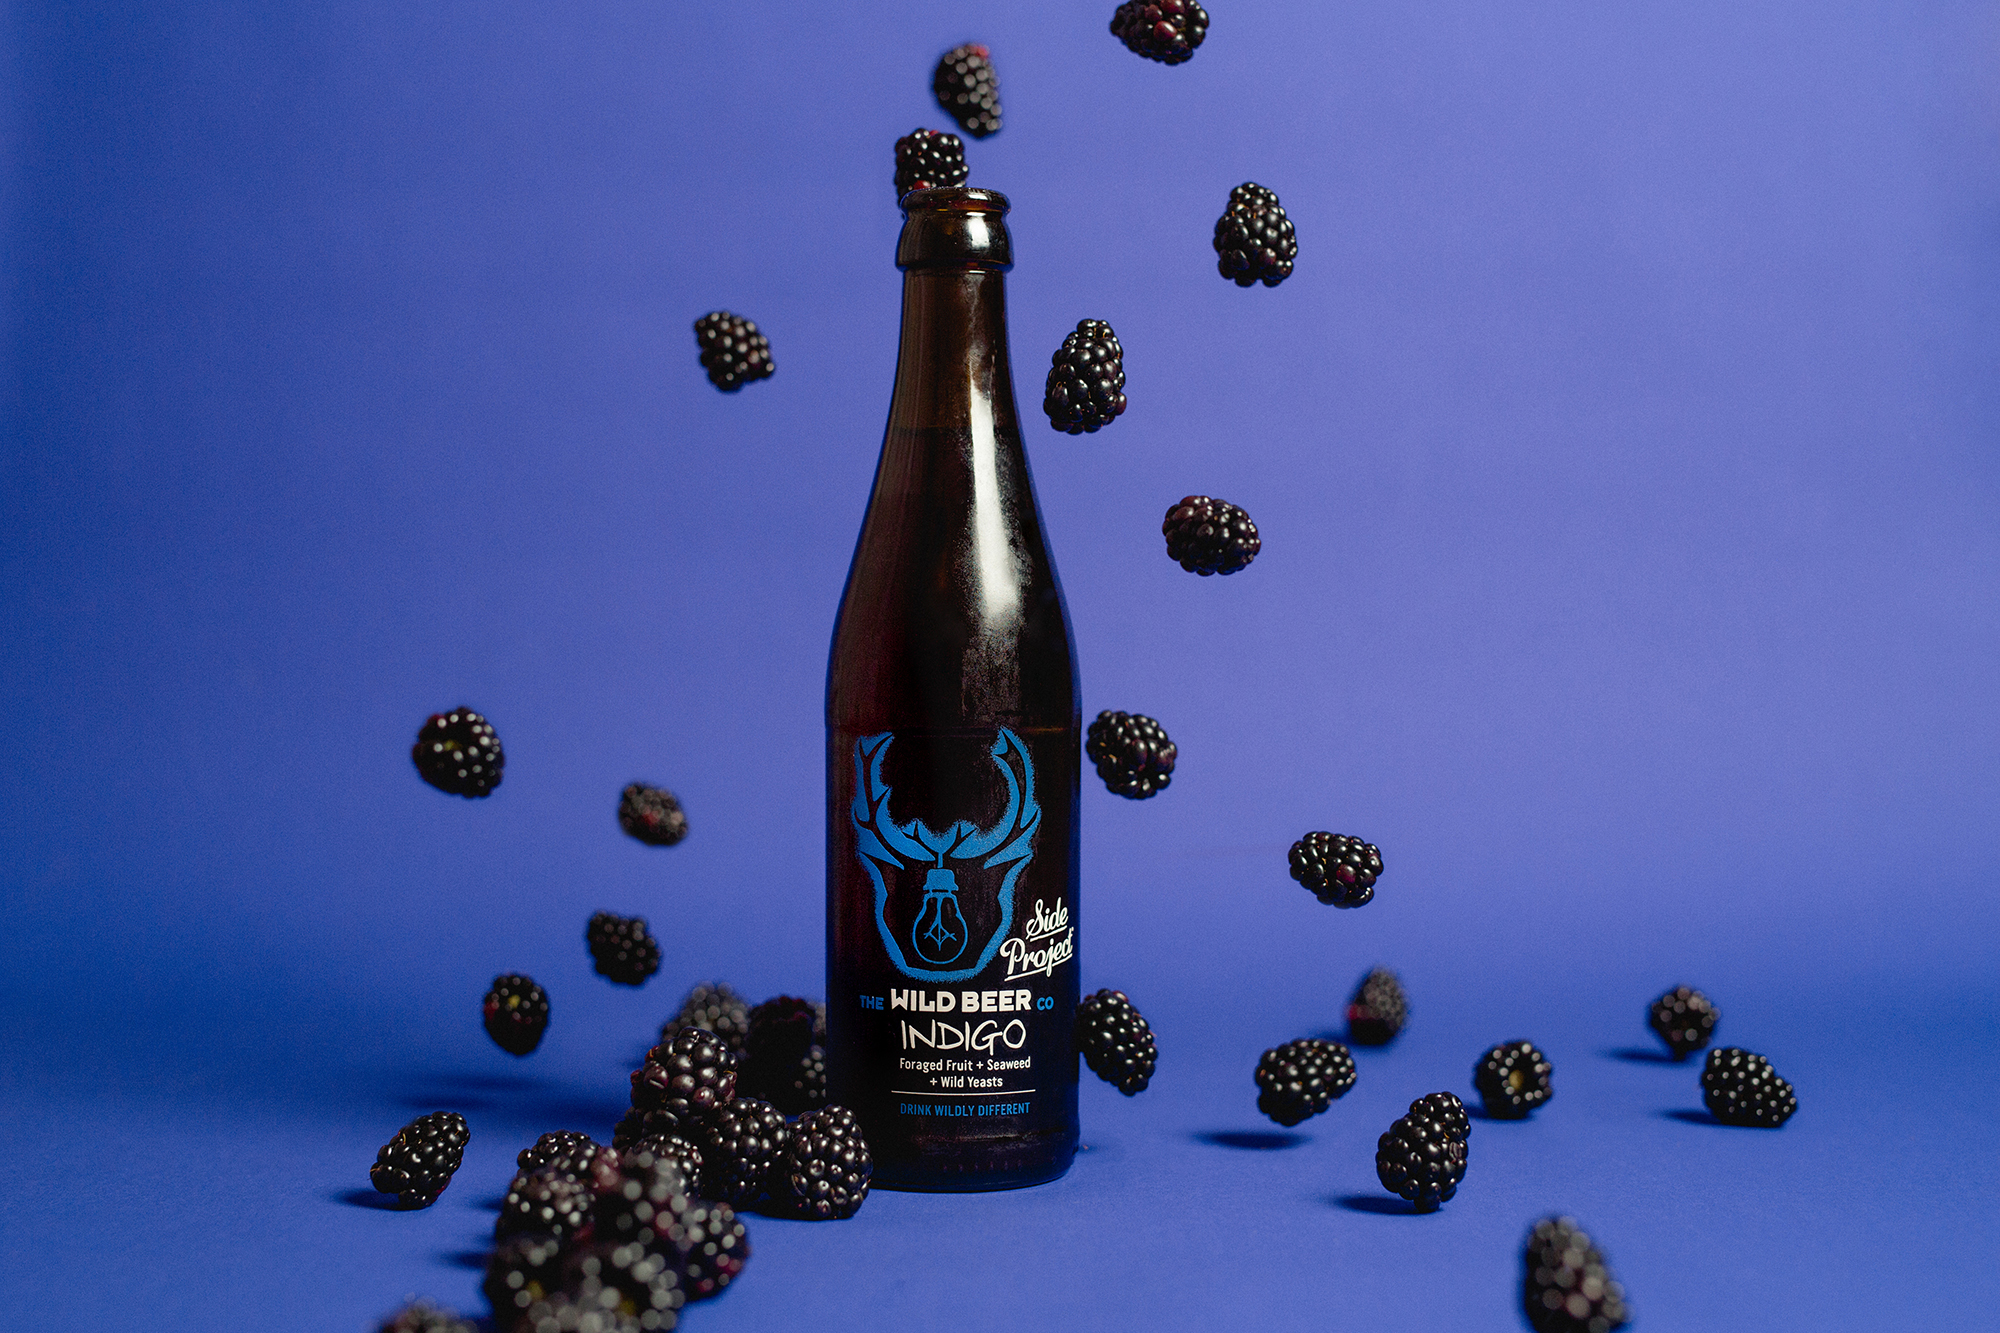 RP17-Wild Beer & side Project - Indigo-comp1.jpg